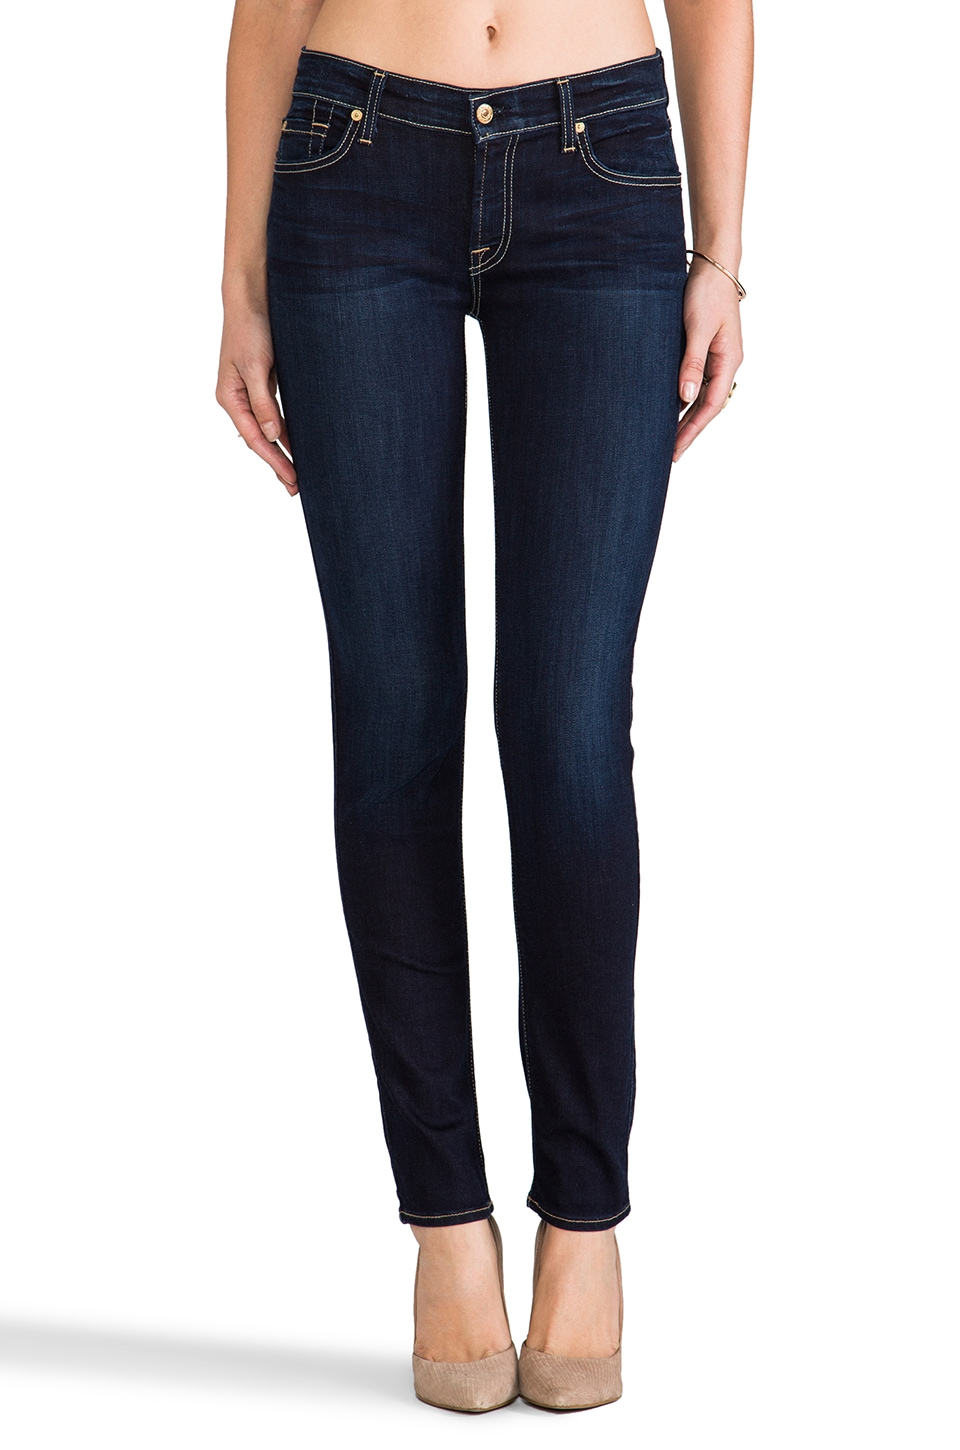 7 For All Mankind The Slim Cigarette in Black Night